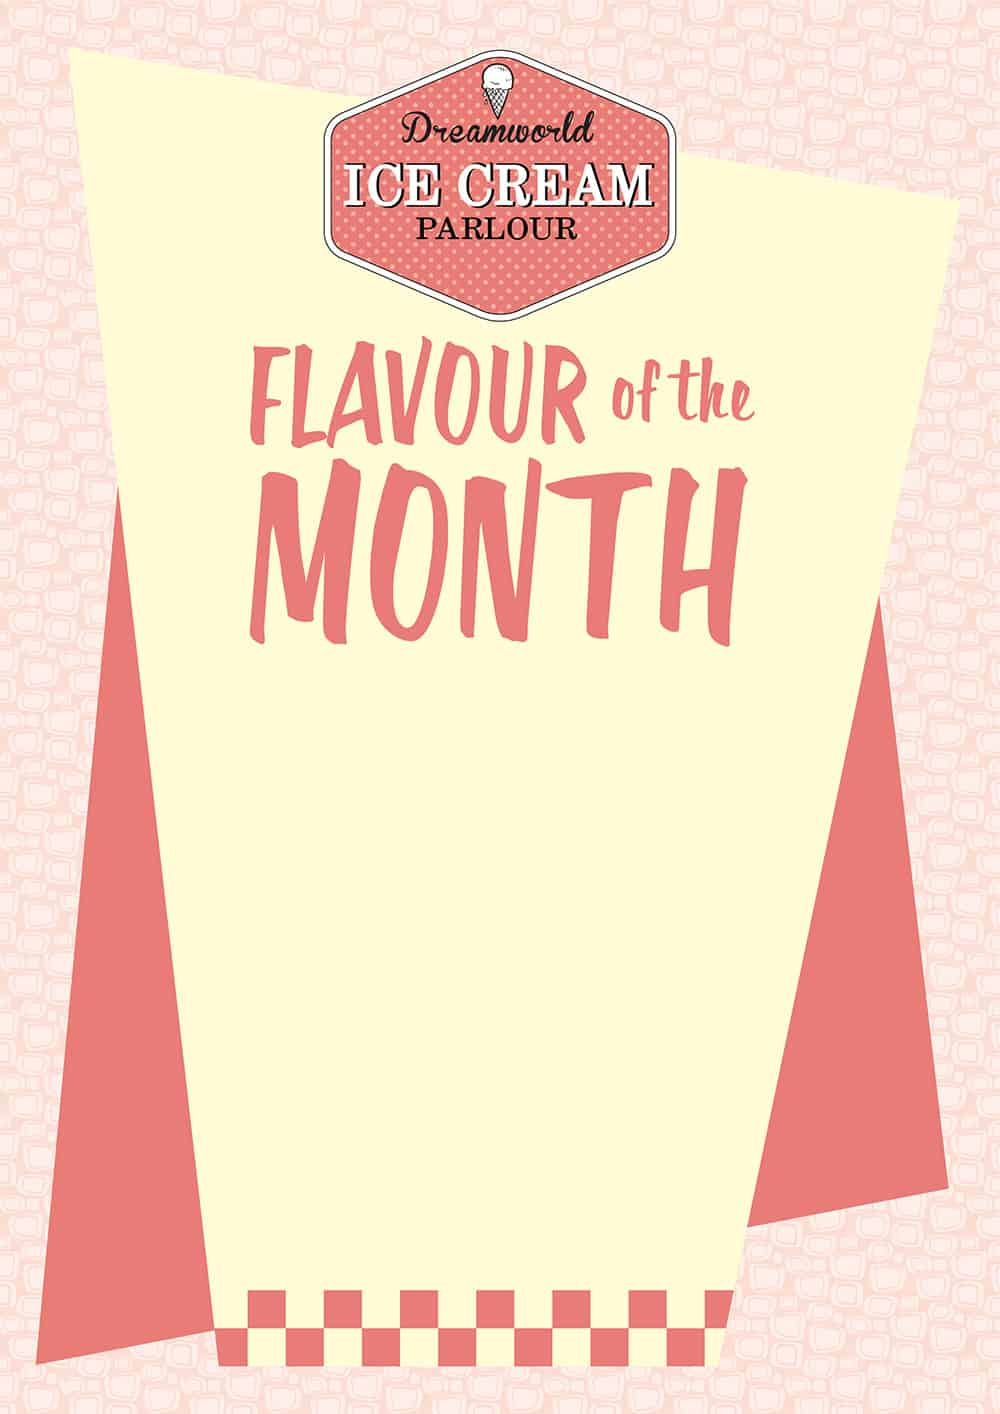 Flavour of the Month Sign